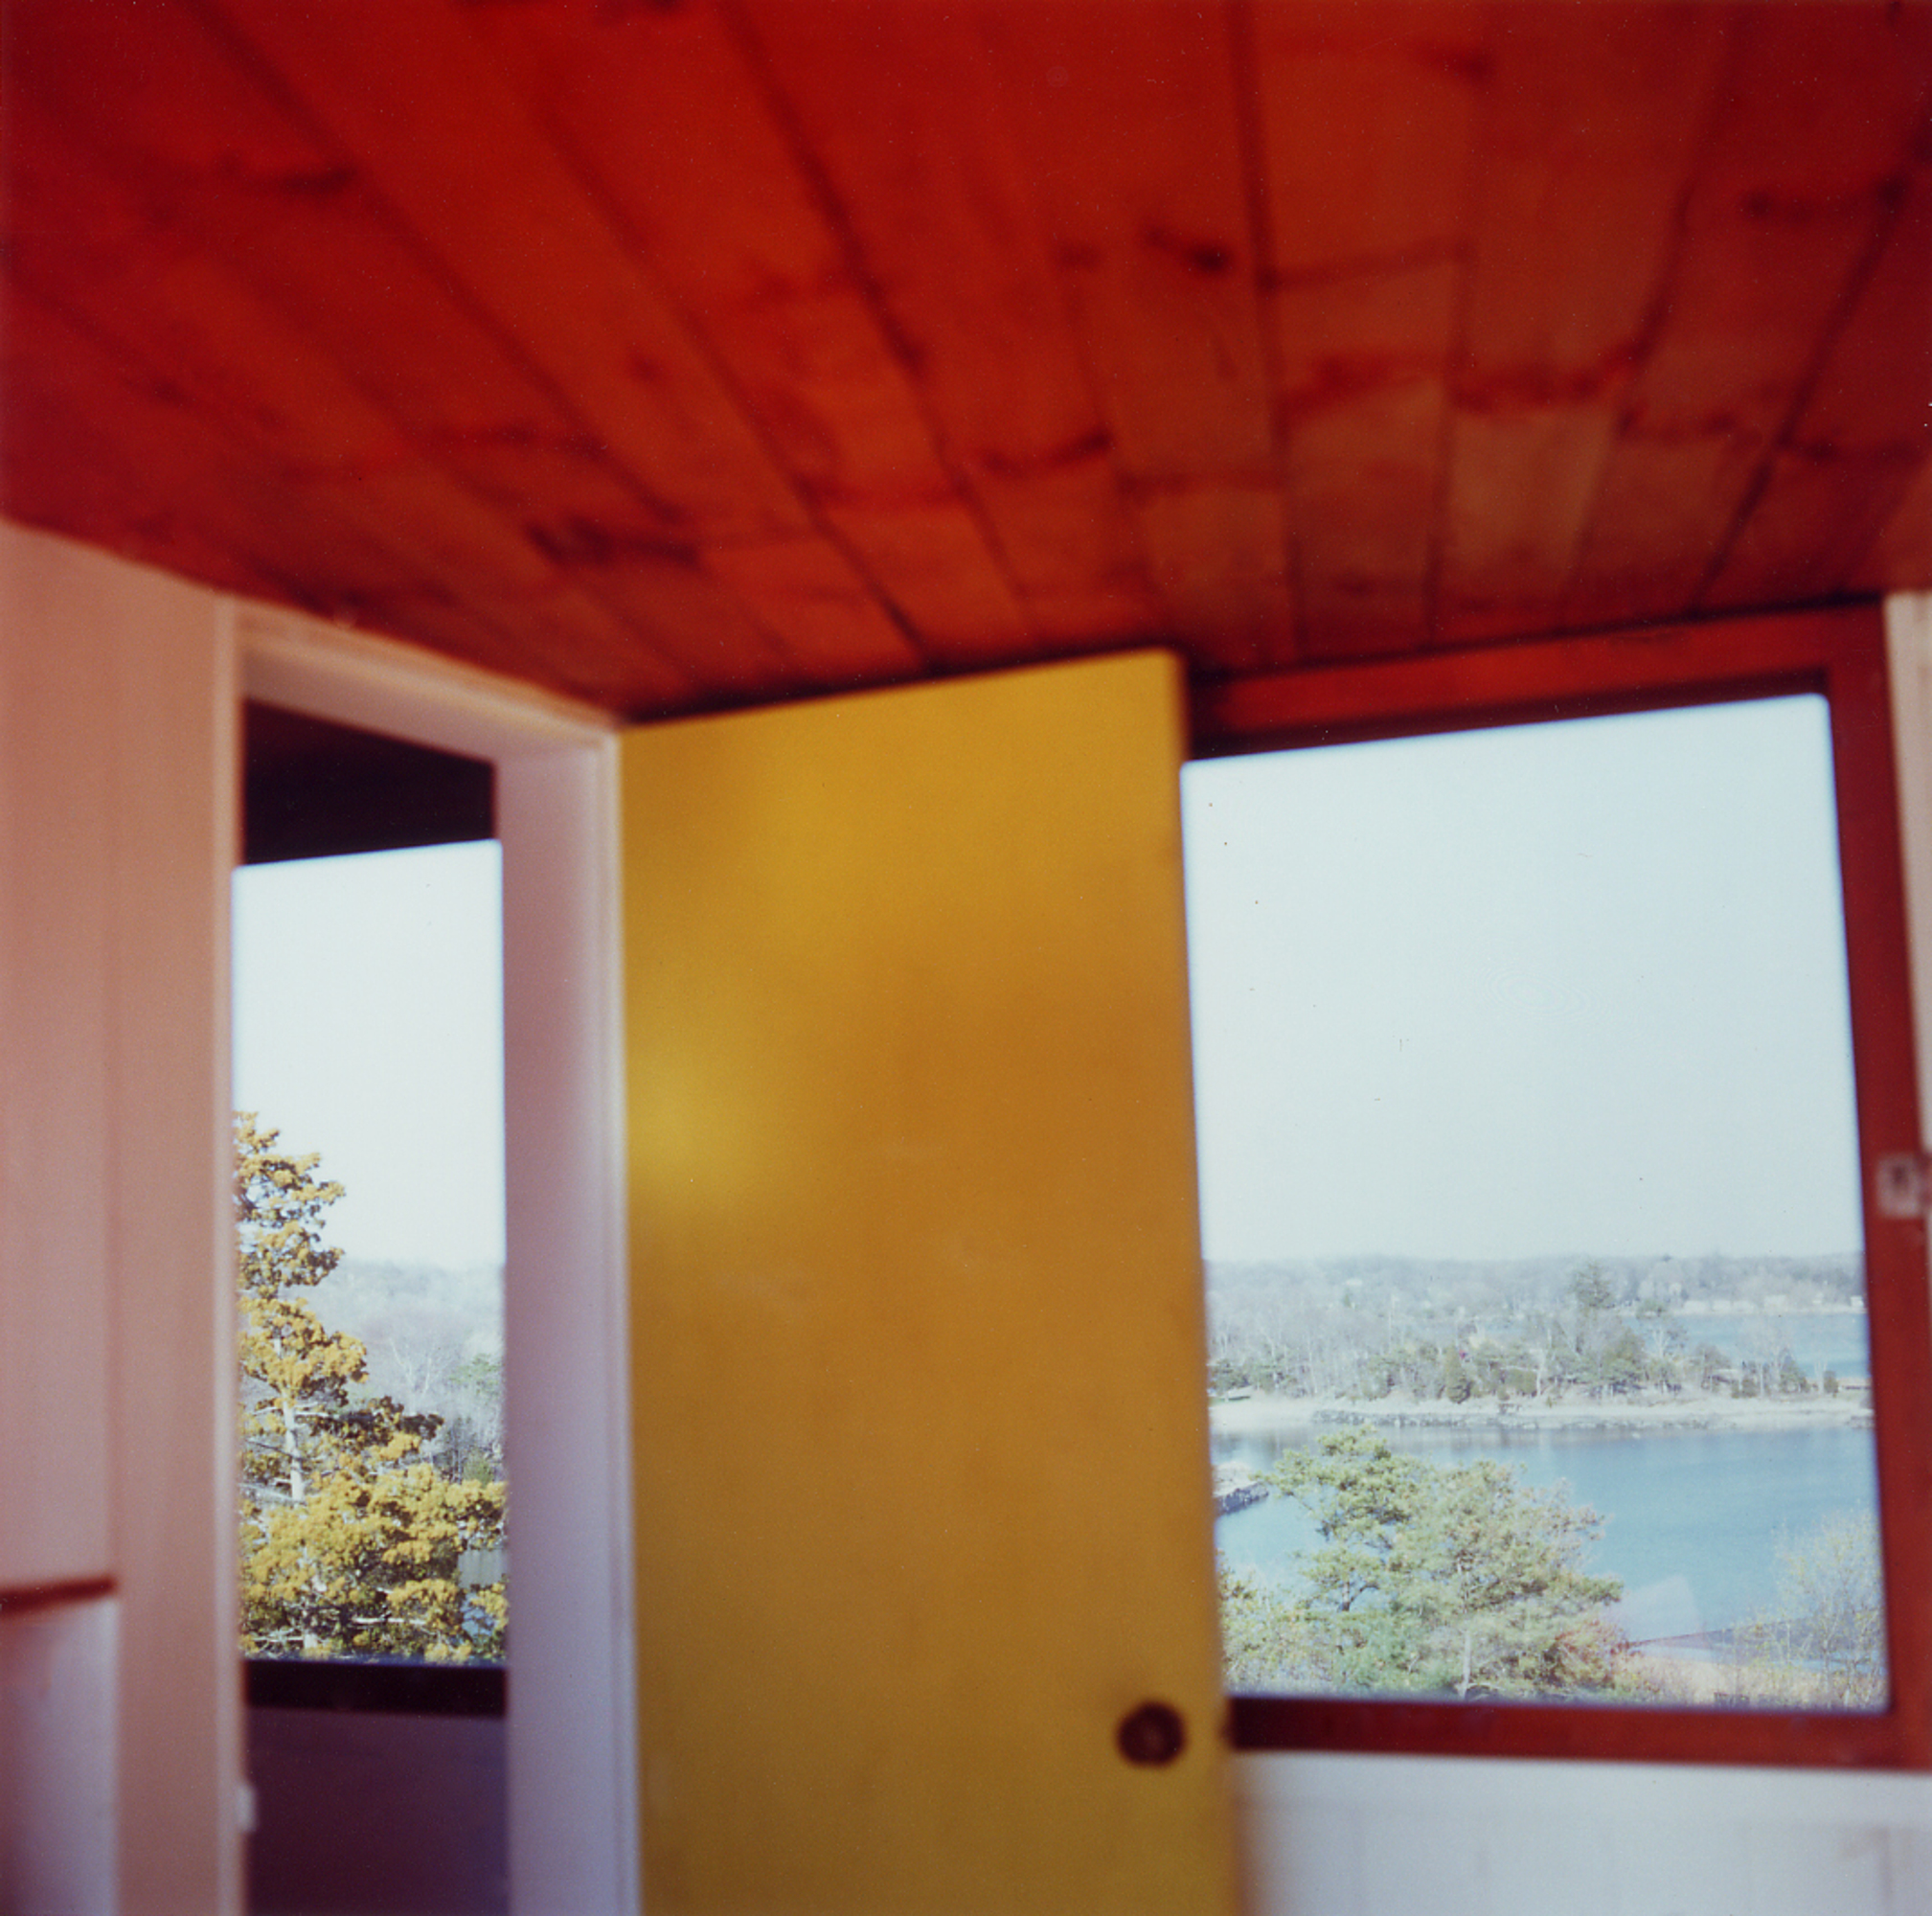 Guest House Right Room, 2003